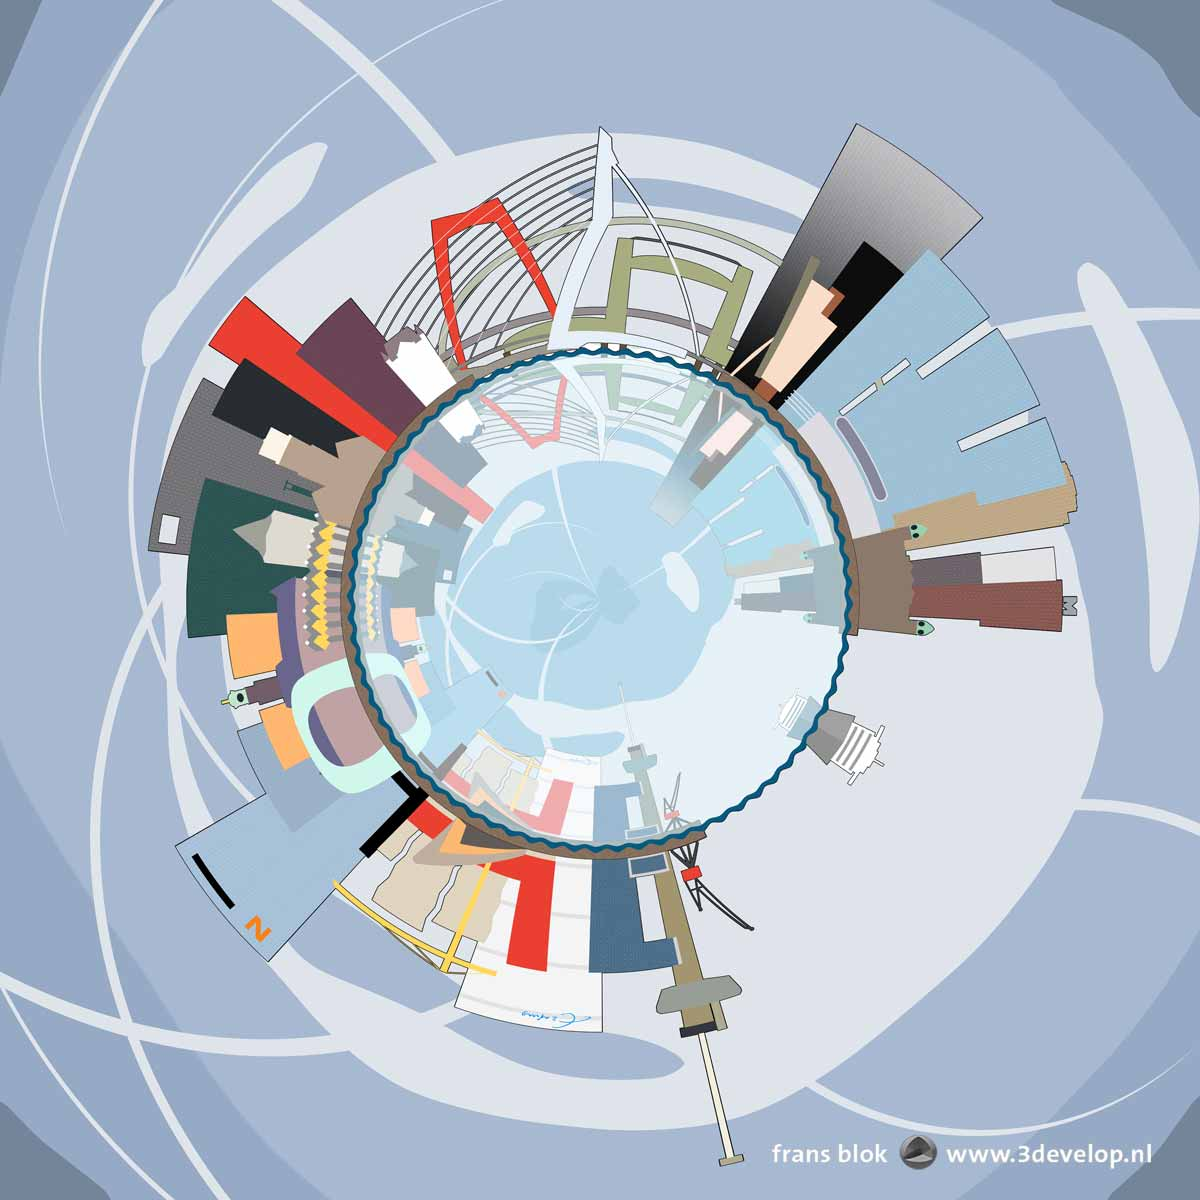 Graphical representation of the colorful Rotterdam skyline as a spherical panorama, with four bridges and iconic buildings like the Central Station, the Market Hall, the Euromast and the Rotterdam building,reflecting in the river Nieuwe Maas